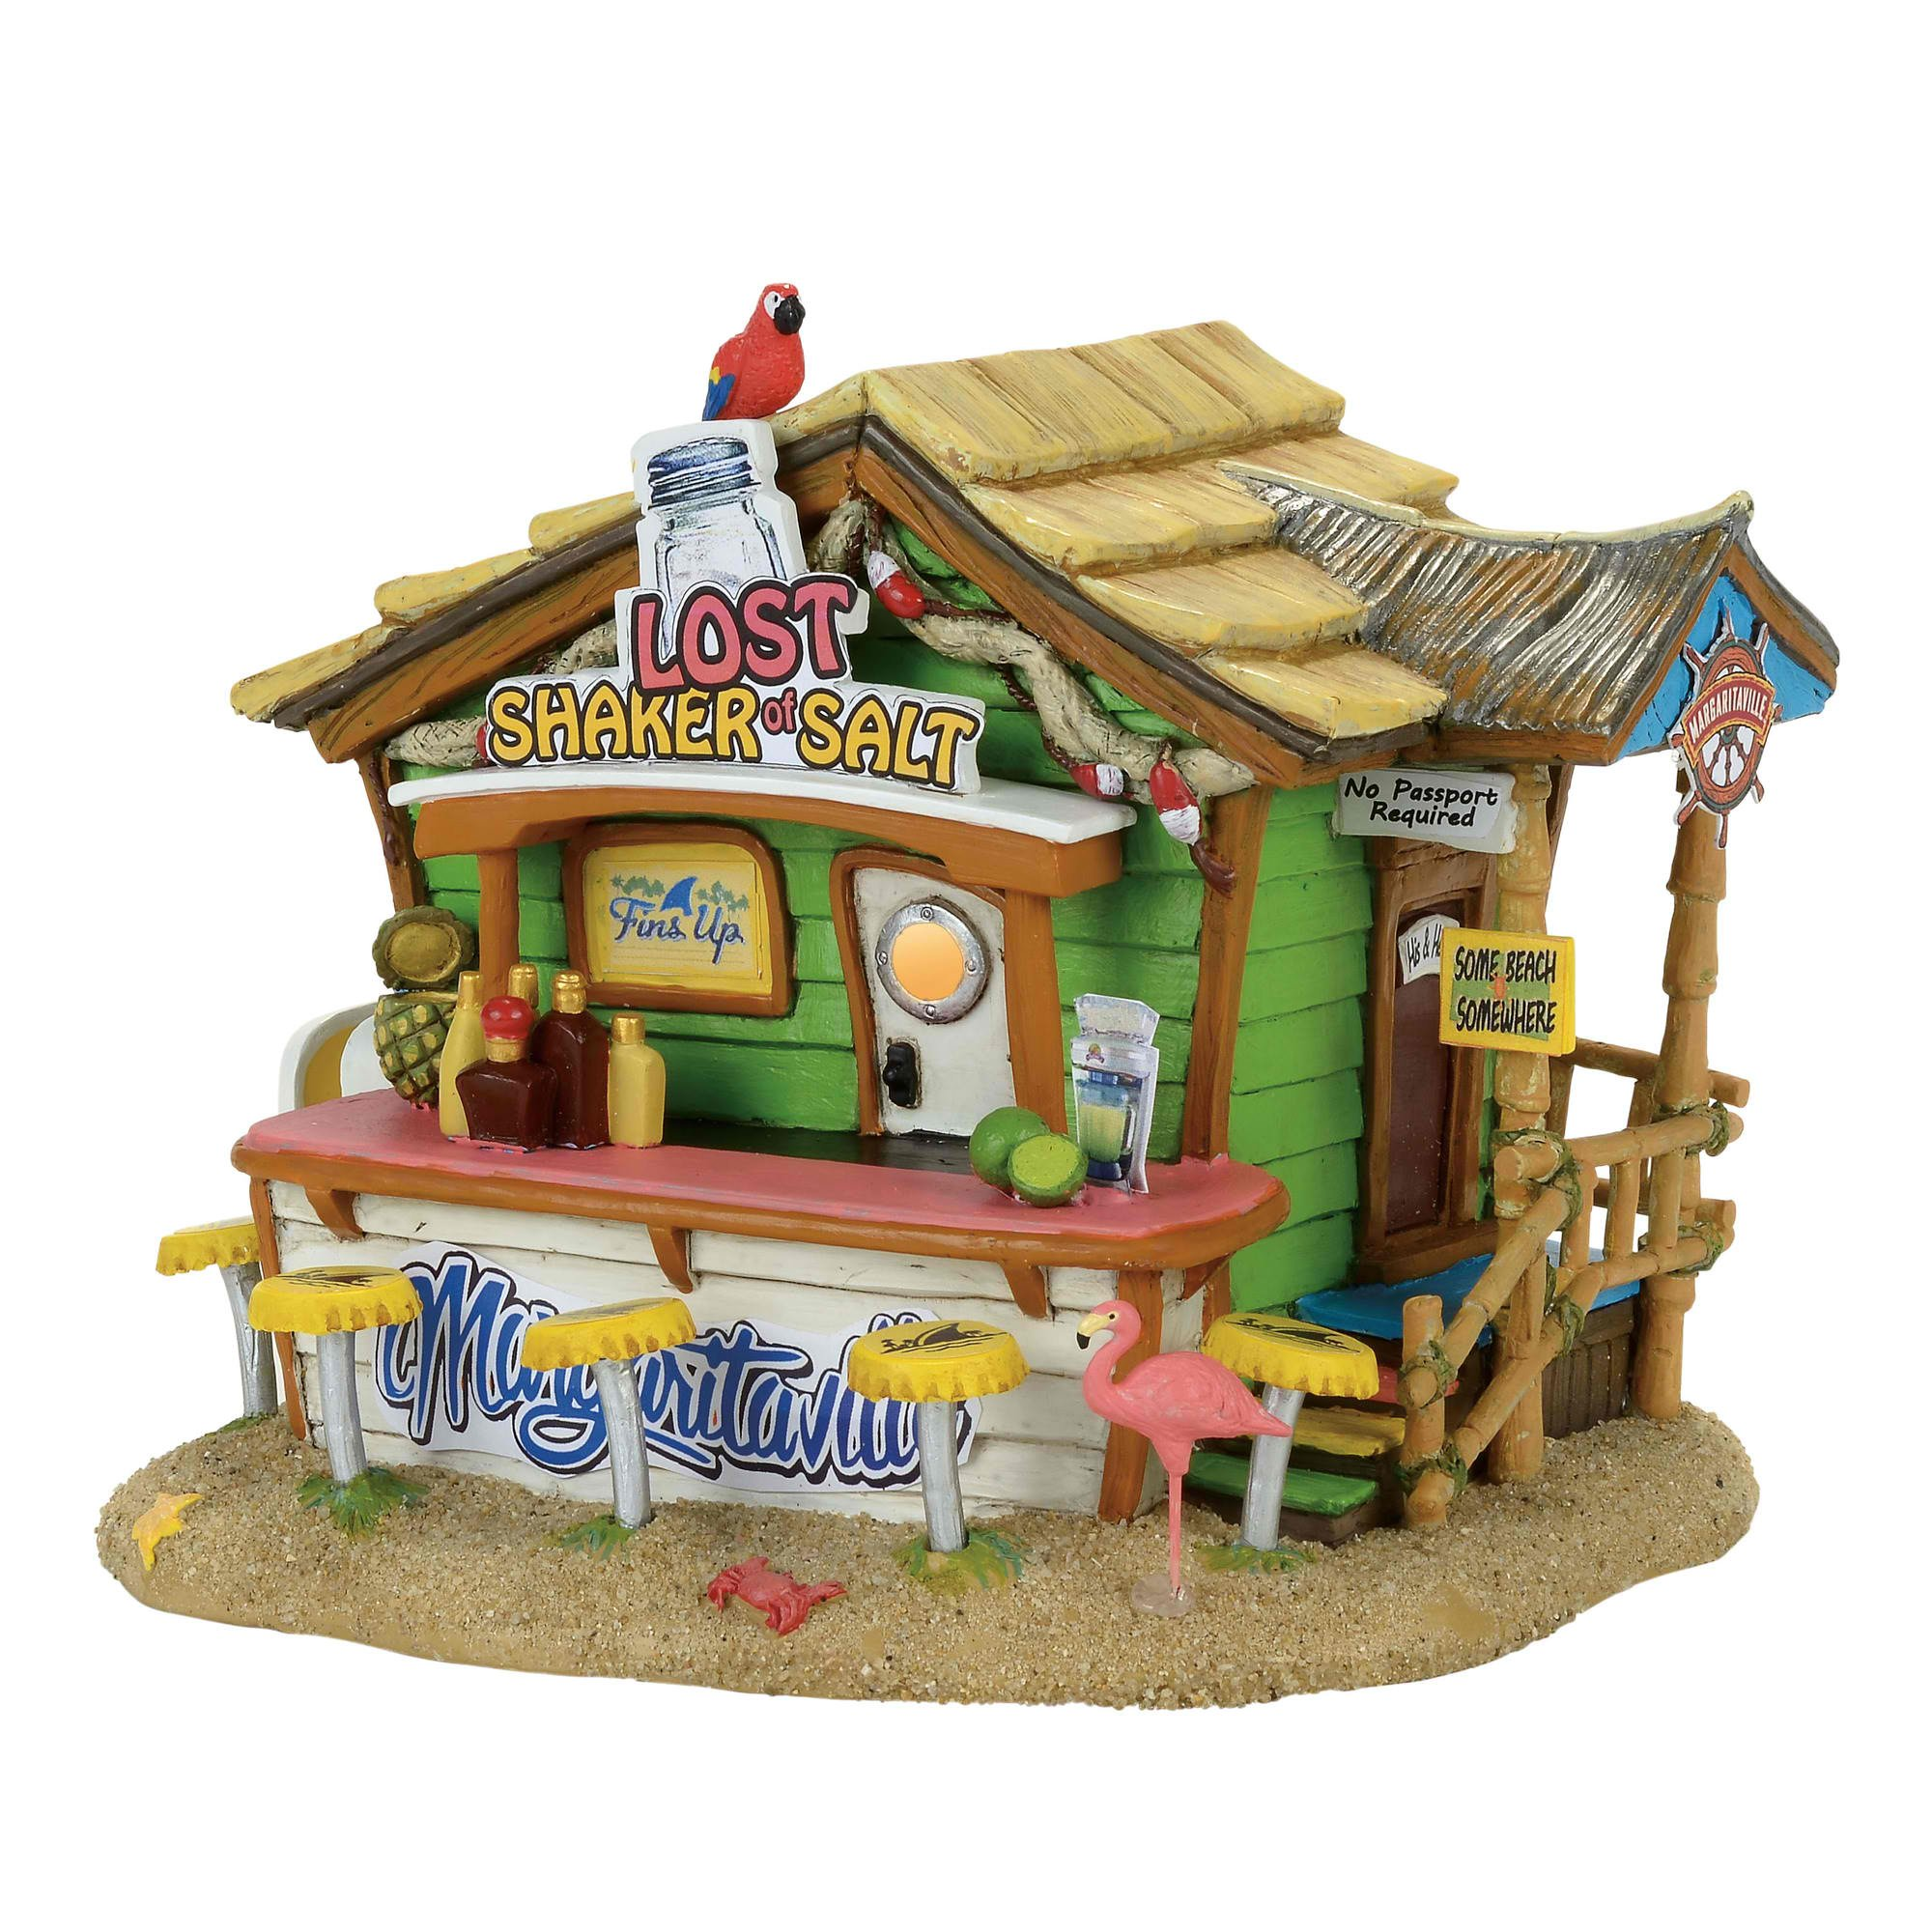 Department 56, Margaritaville Village Marg Lost Shaker Of Salt Bar by Margaritaville